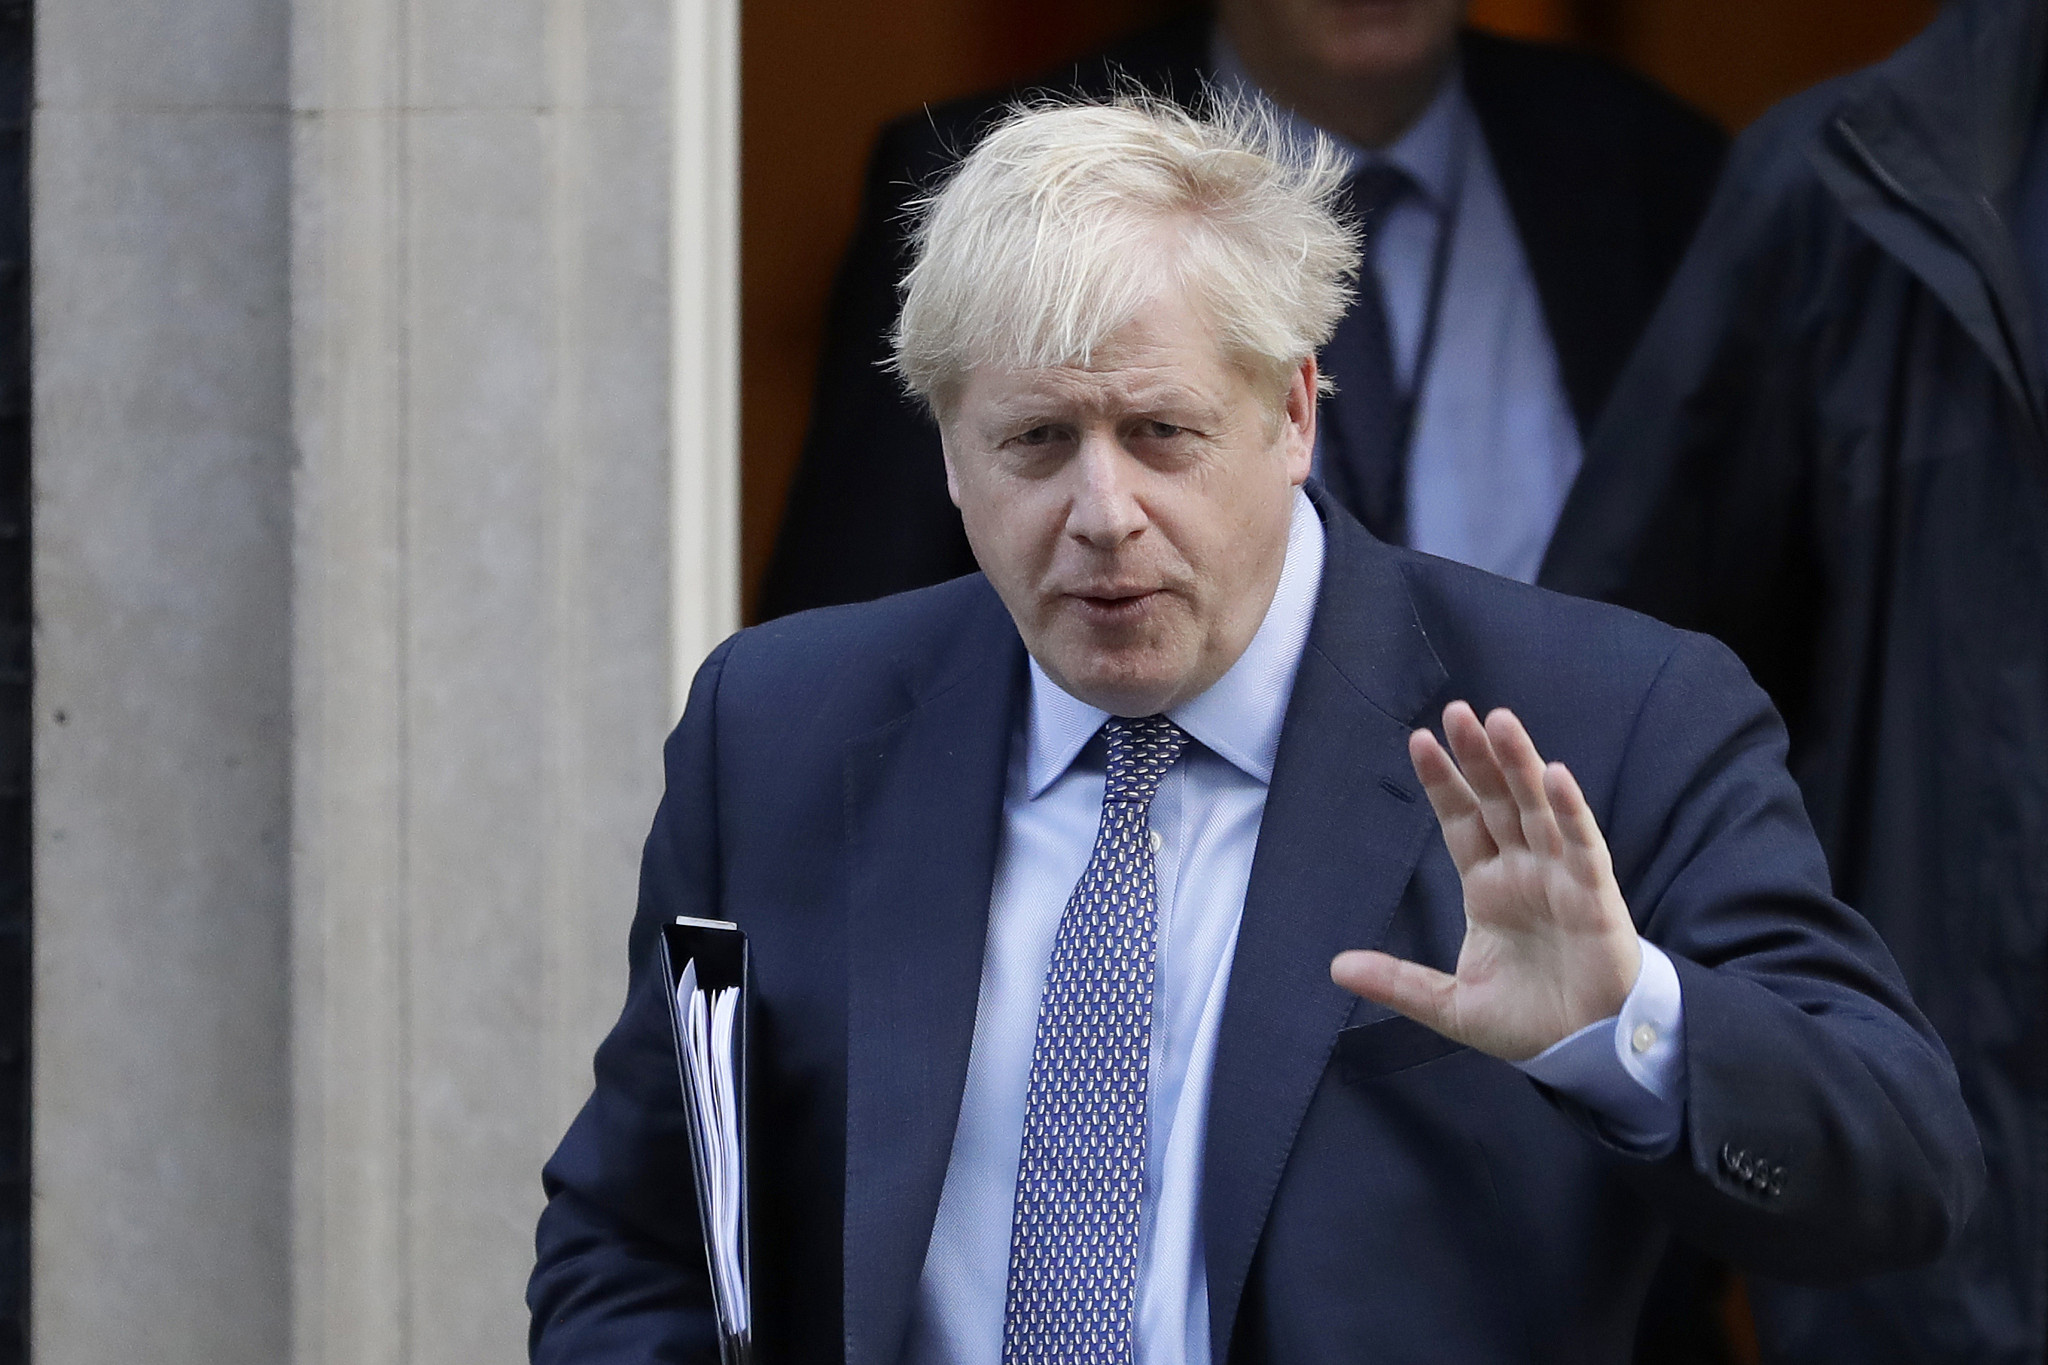 European Union could approve Johnson's Brexit extension request by Friday